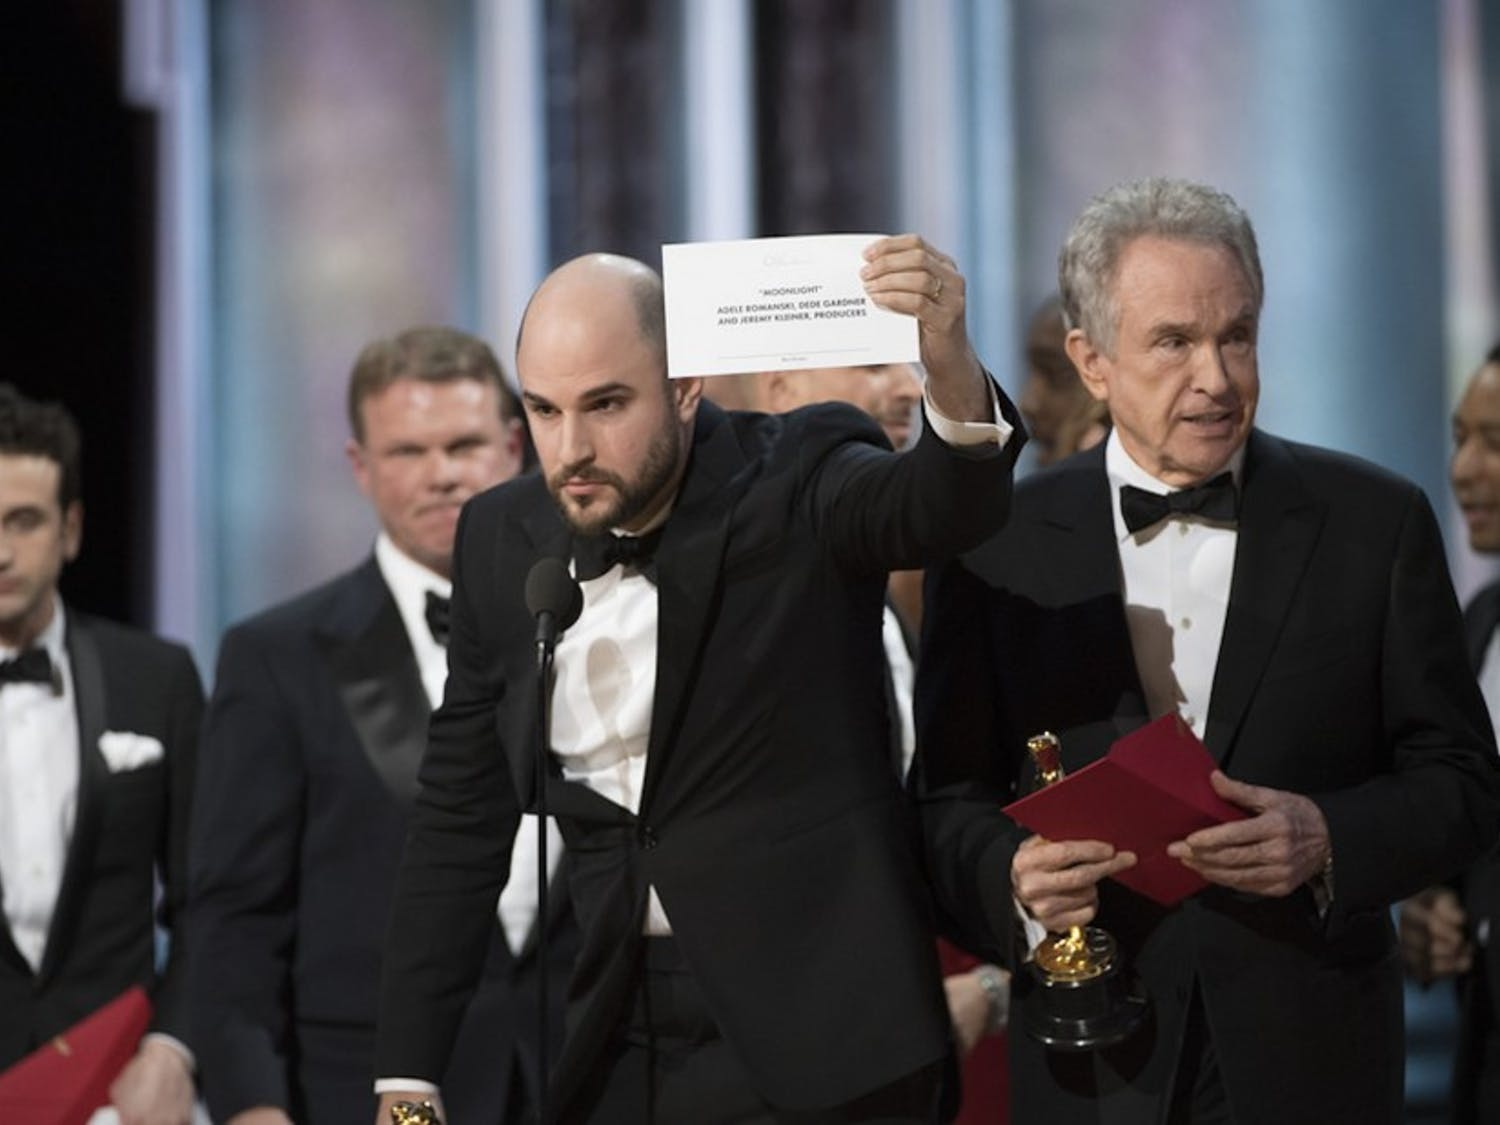 """The biggest story of the 2017 awards season was """"Moonlight""""'s Academy Award for Best Picture after """"La La Land"""" was incorrectly announced as the winner."""